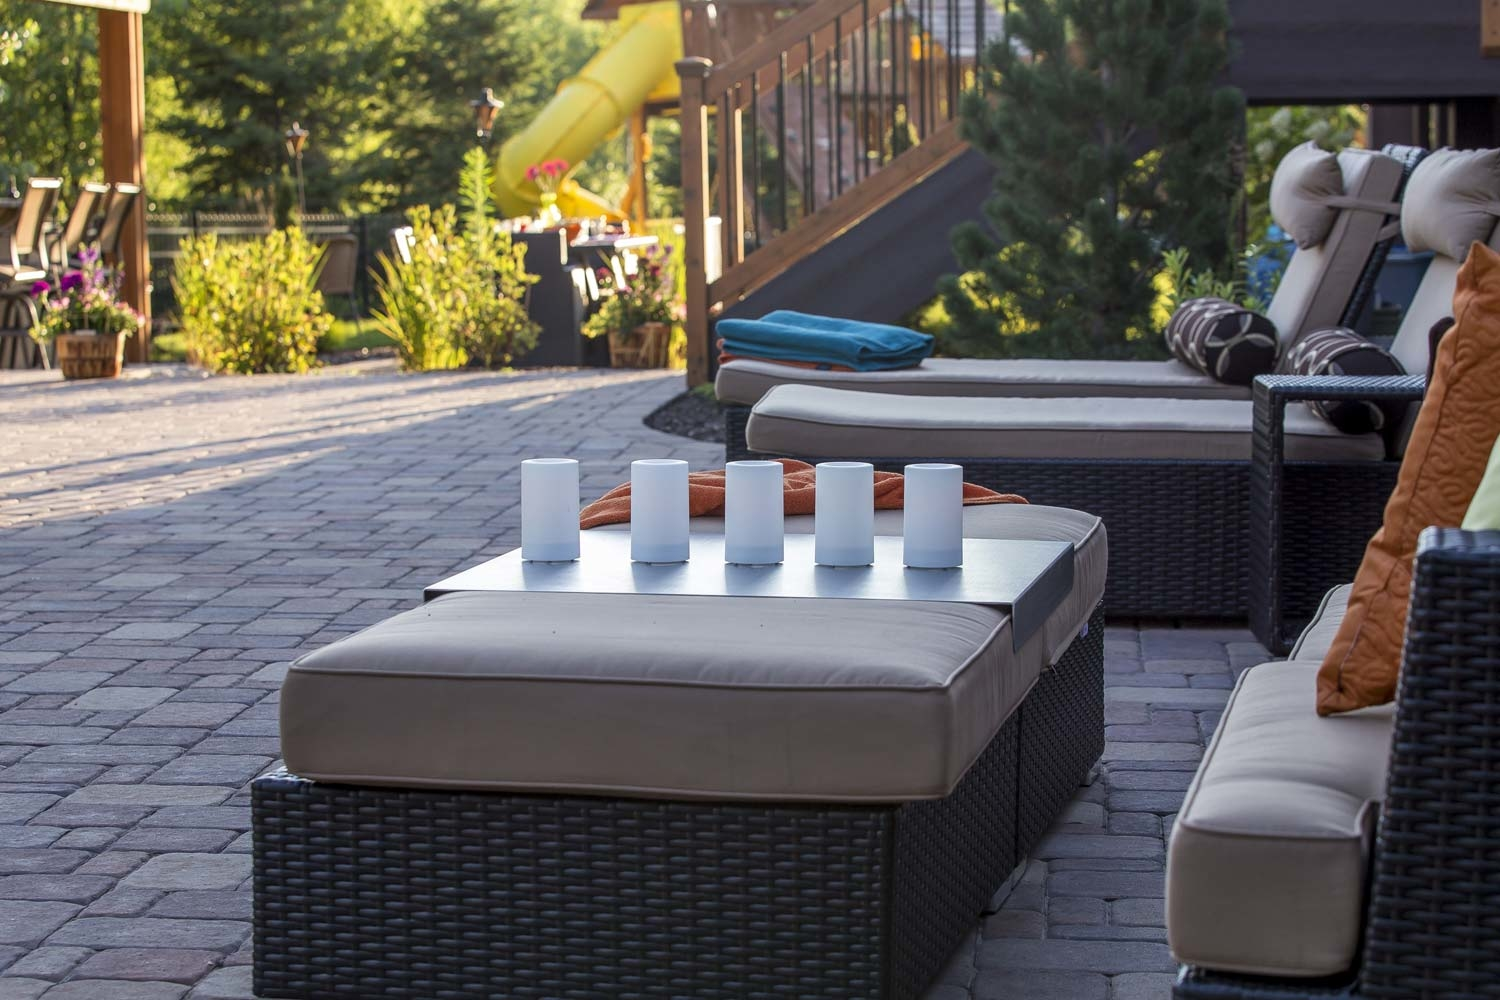 BMR pool and patio outdoor living